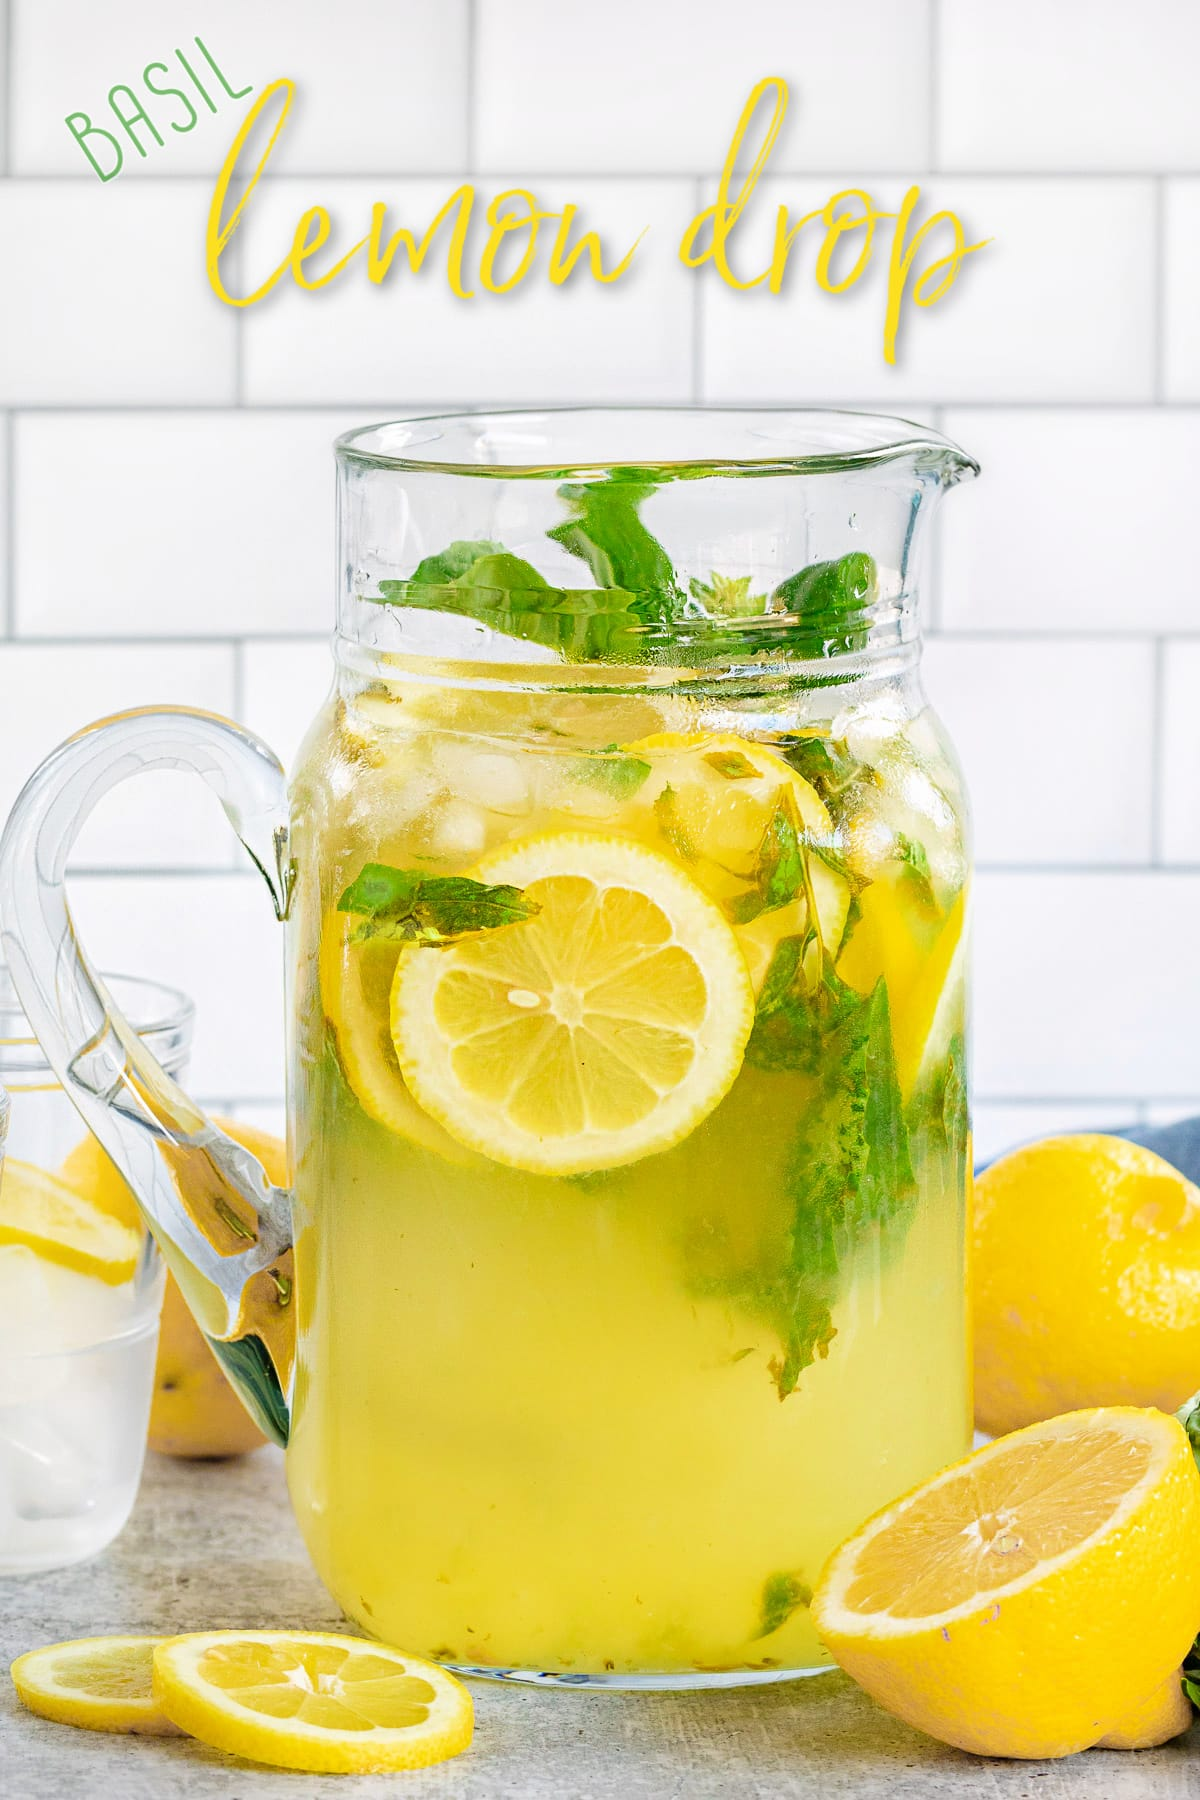 basil lemon drop in glass pitcher with lemon slices in and around pitcher with title overlay